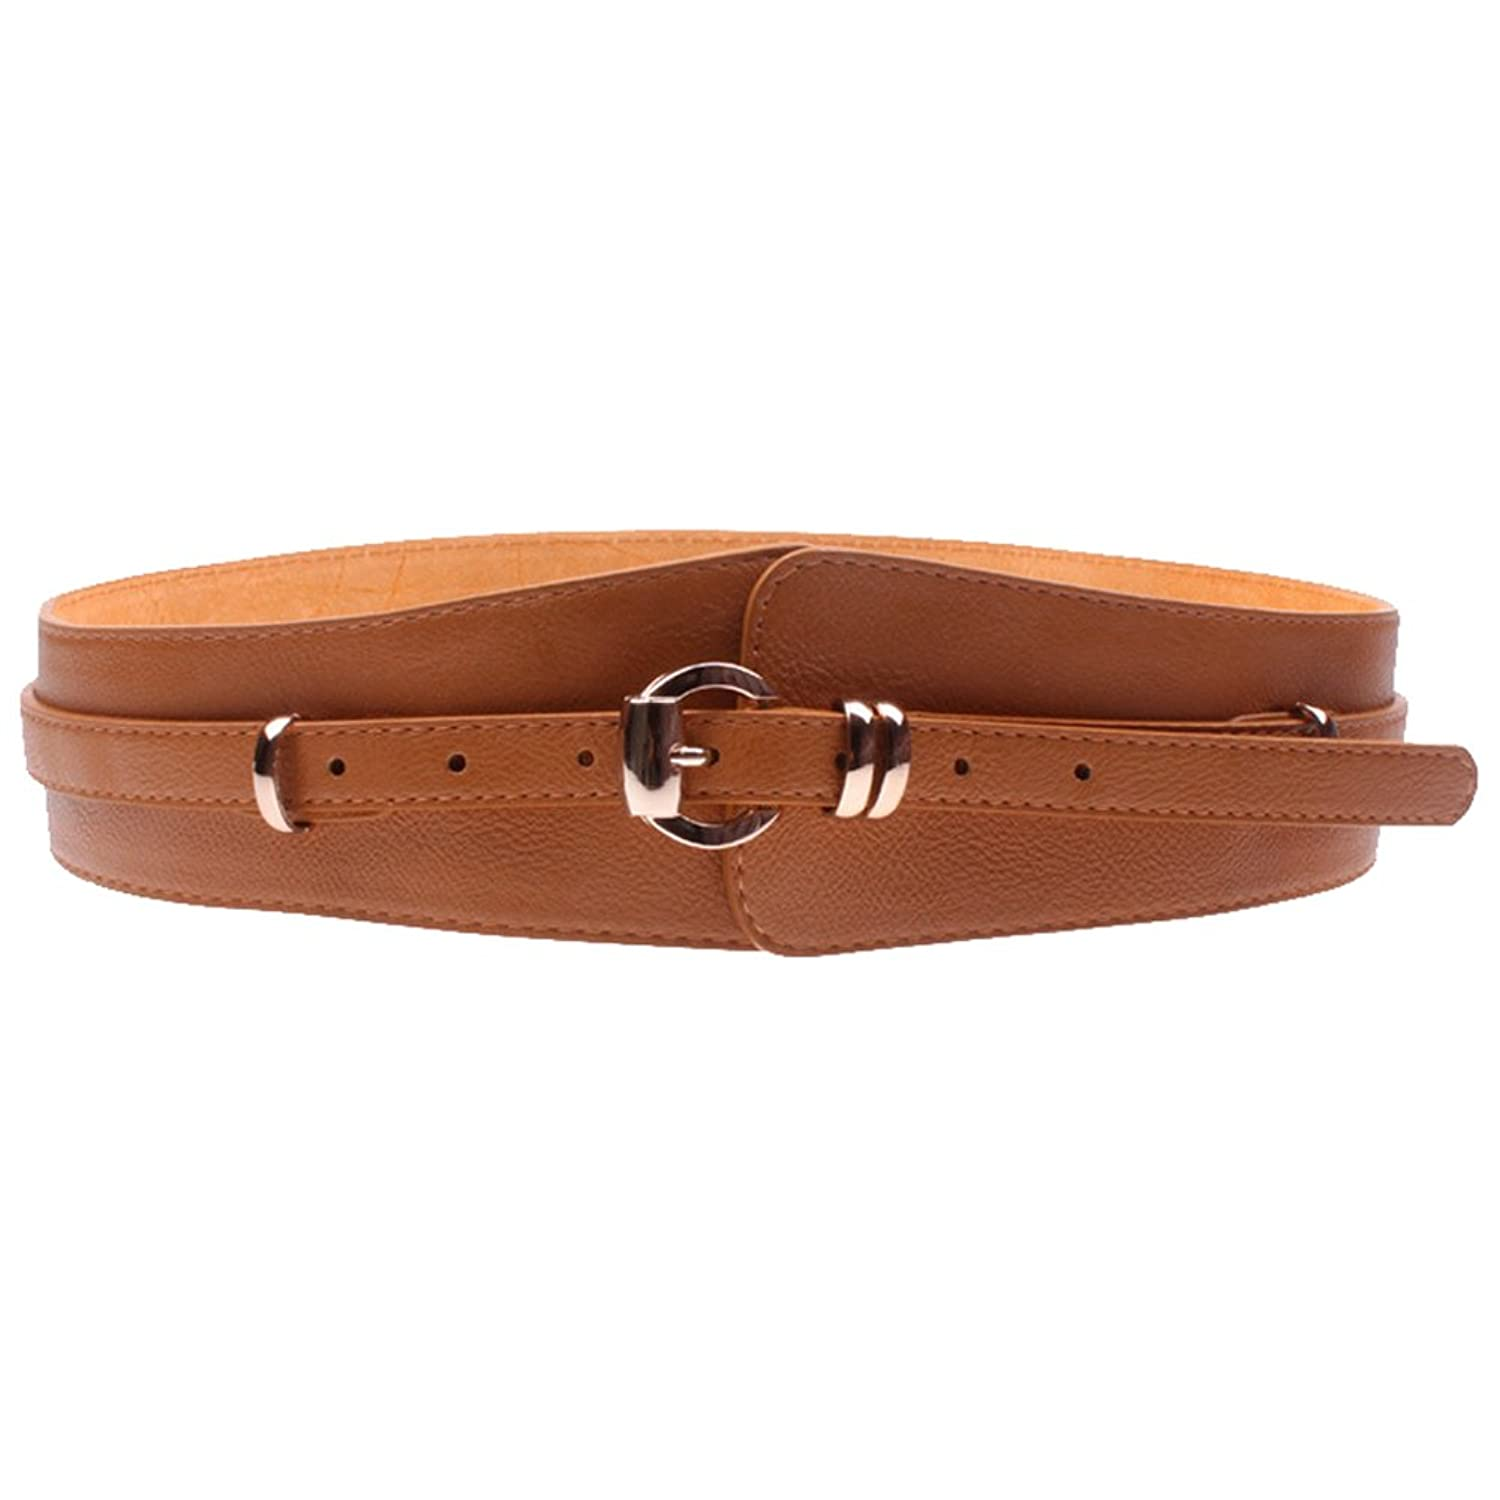 Deercon Women Vintage Metal Leather Stretch Buckle Wide Waist Belt Waistband(3 colors)